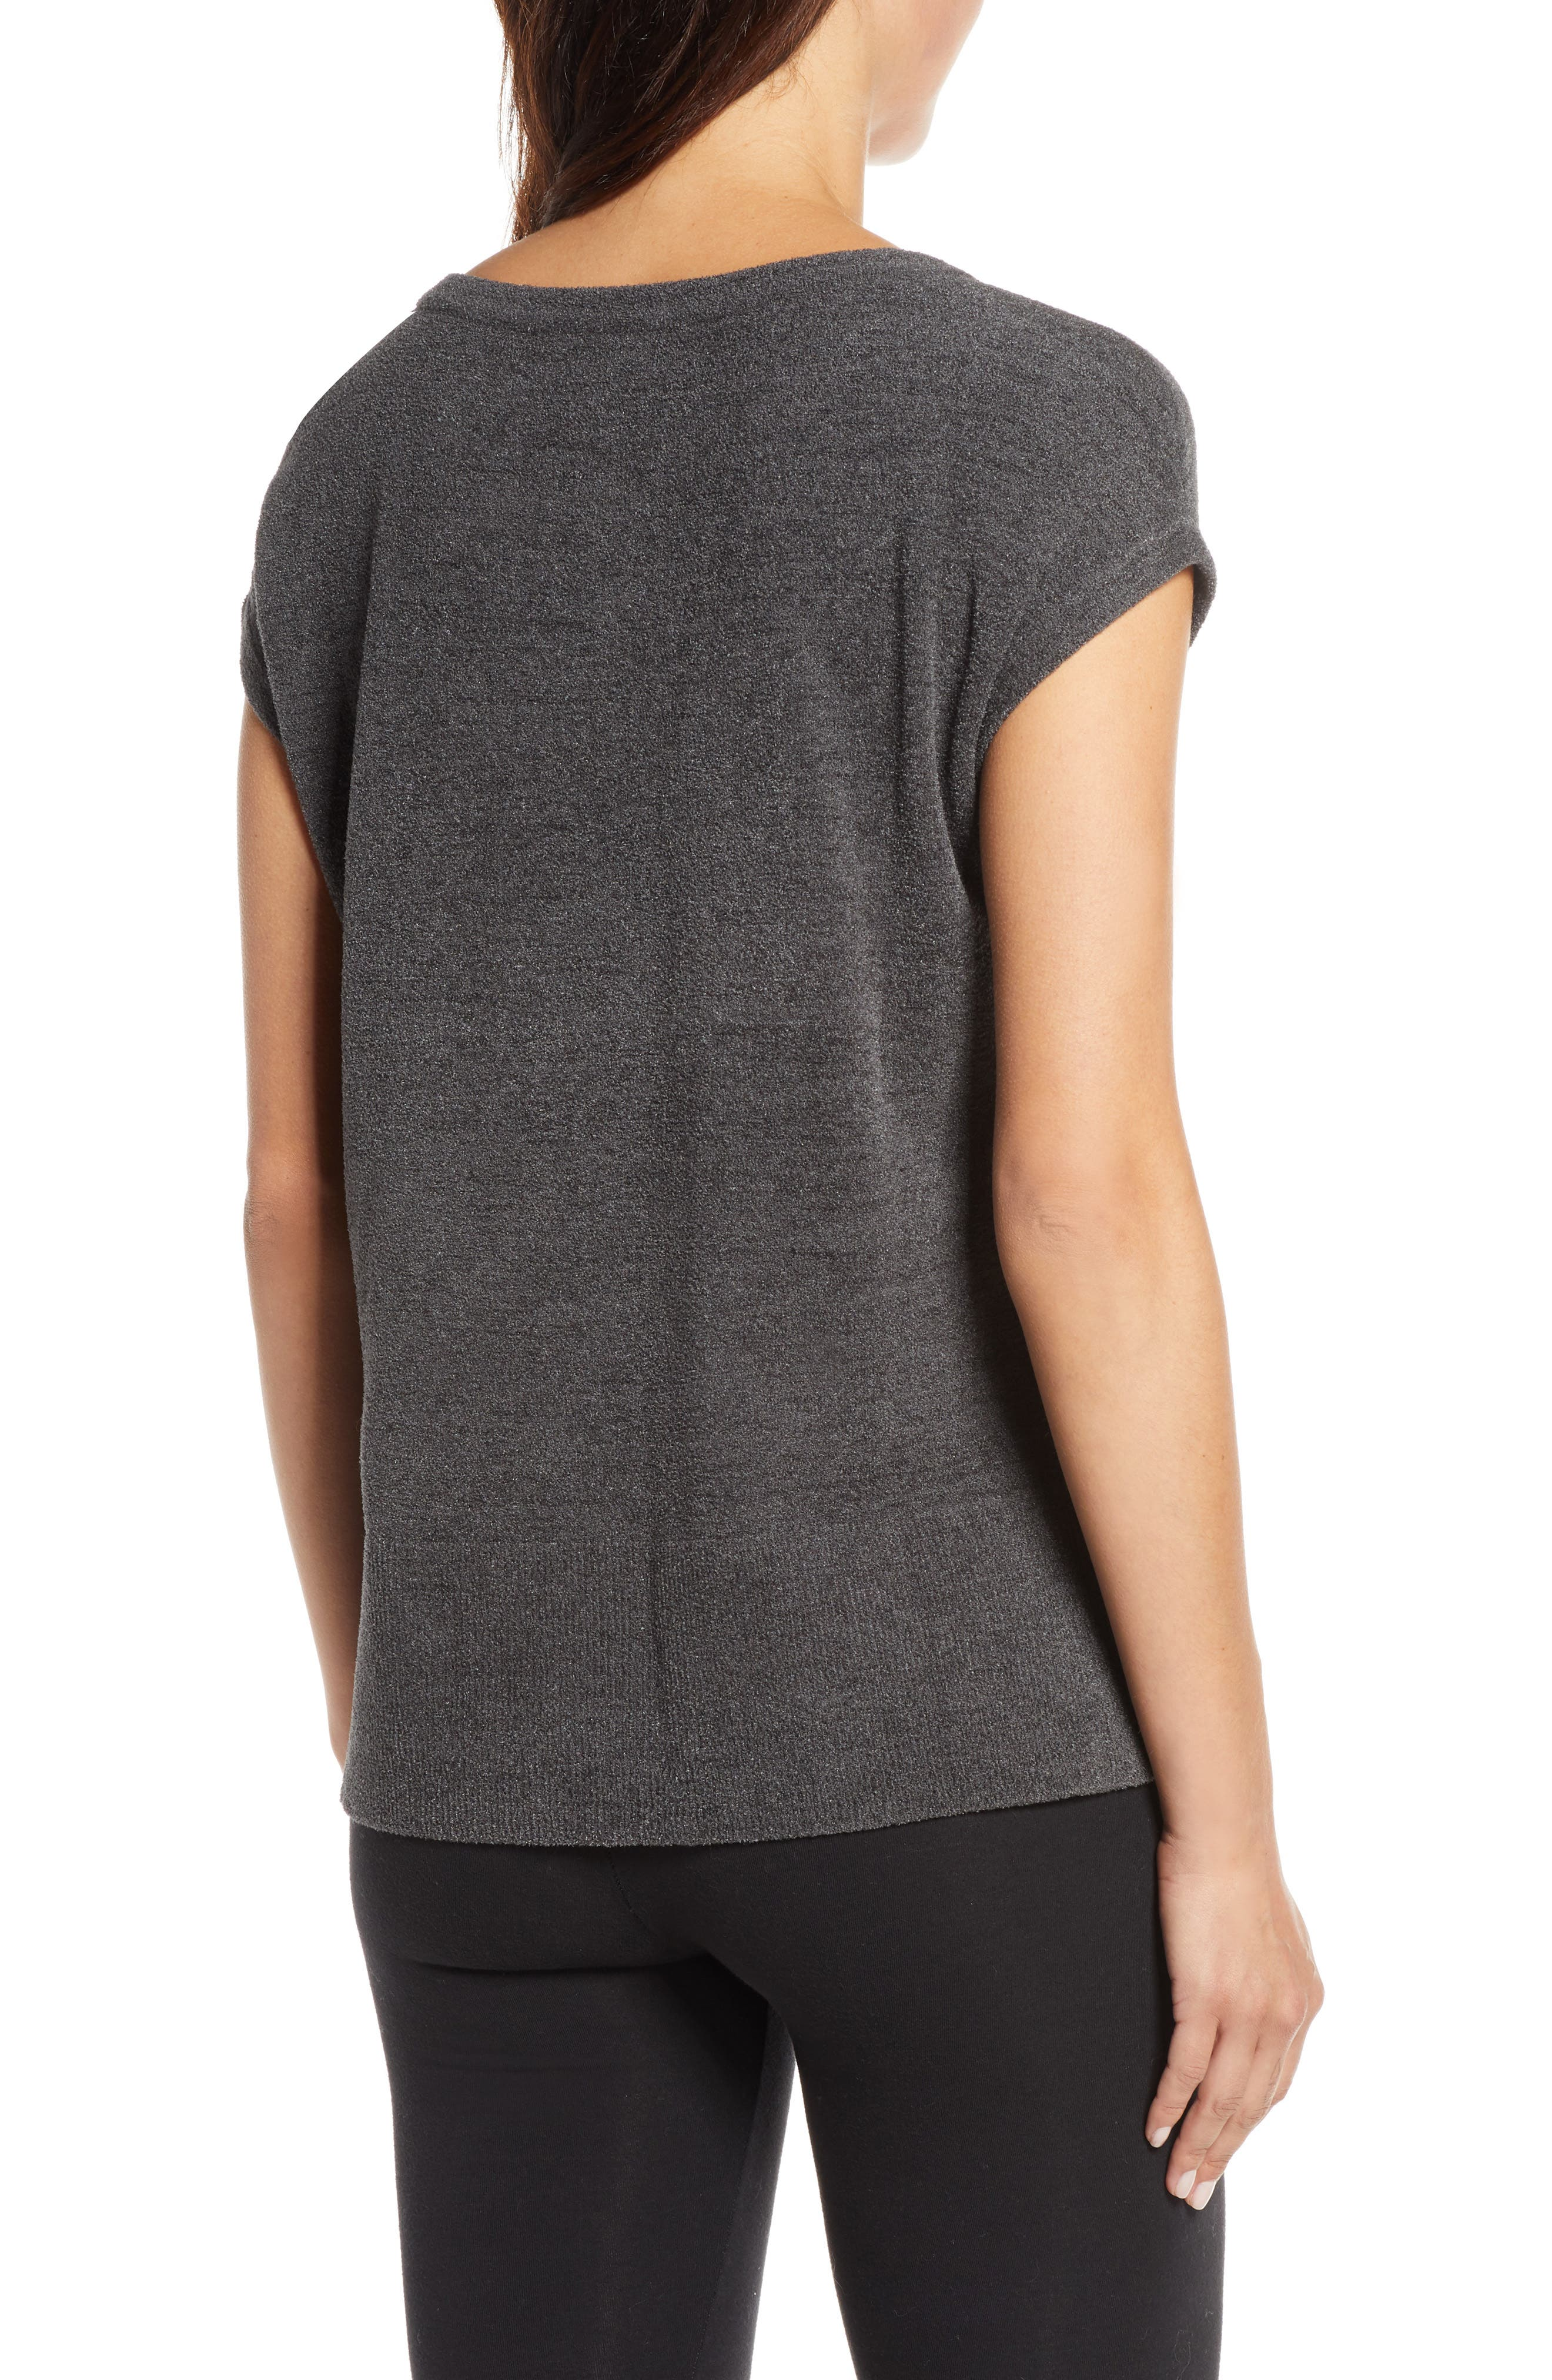 BAREFOOT DREAMS<SUP>®</SUP>, CozyChic Ultra Lite<sup>®</sup> Lounge Tee, Alternate thumbnail 2, color, CARBON